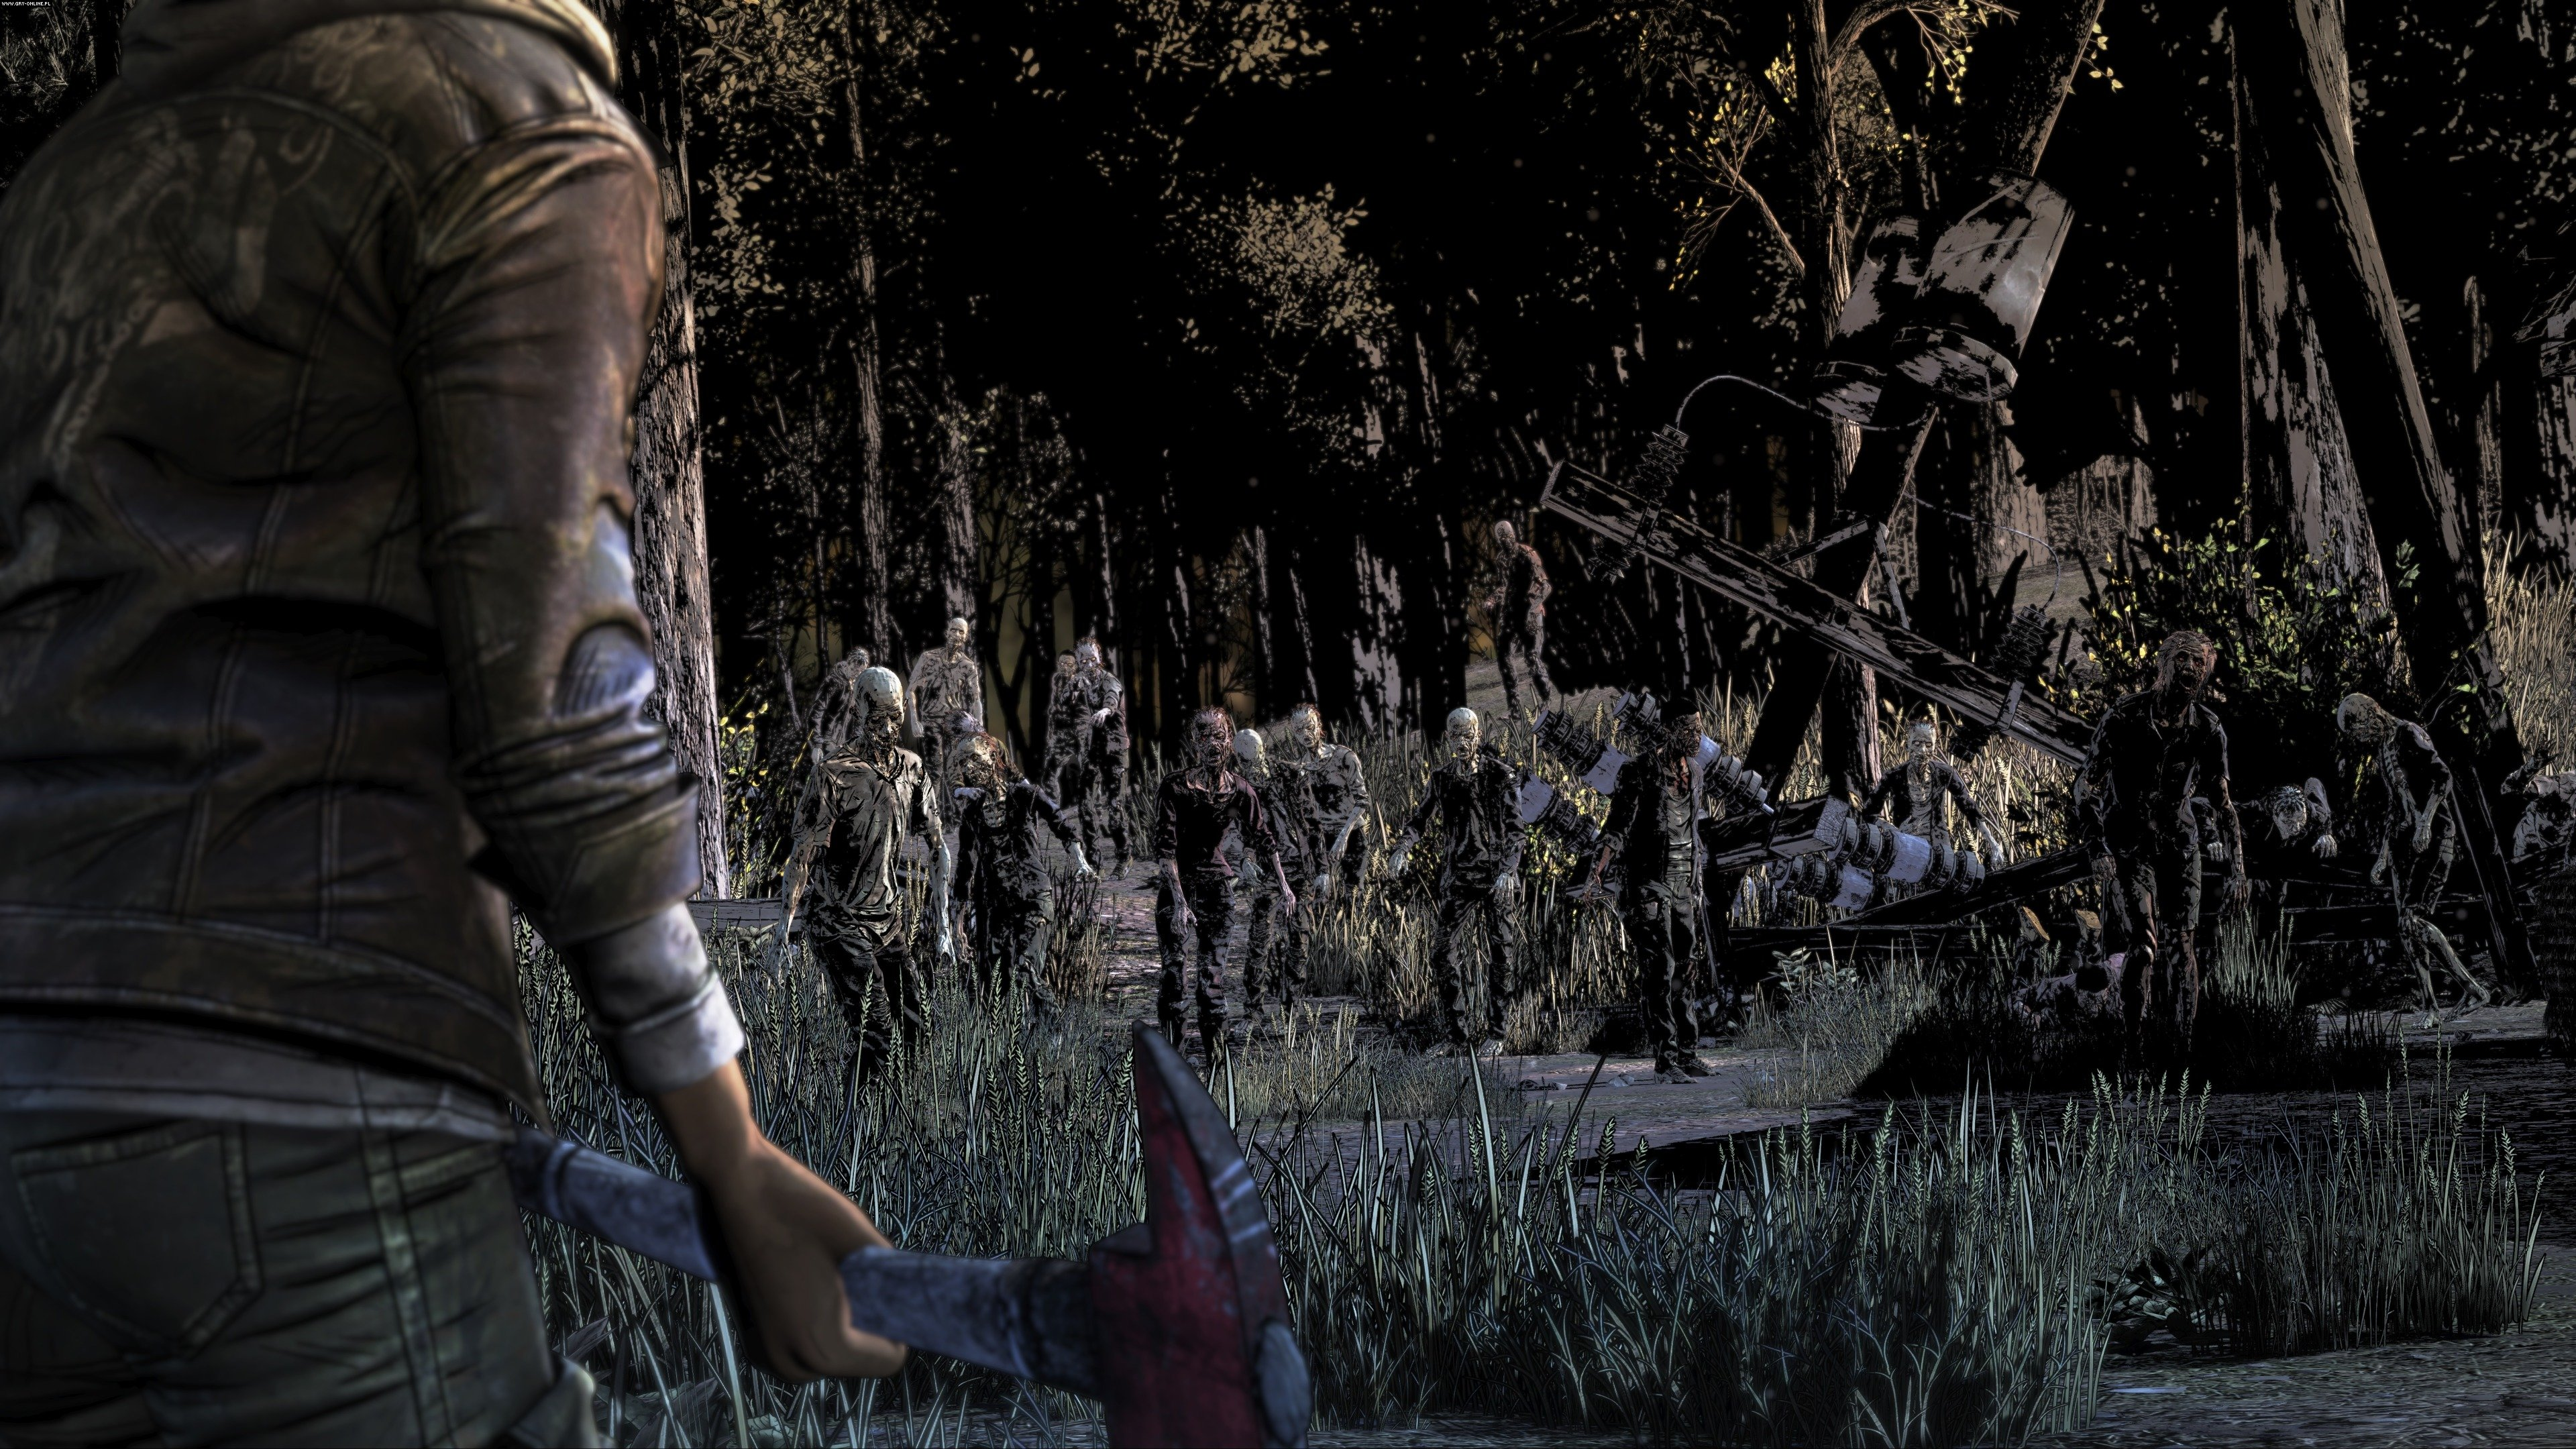 The Walking Dead: The Final Season PC, PS4, XONE, AND, iOS, Switch Gry Screen 3/29, Telltale Games